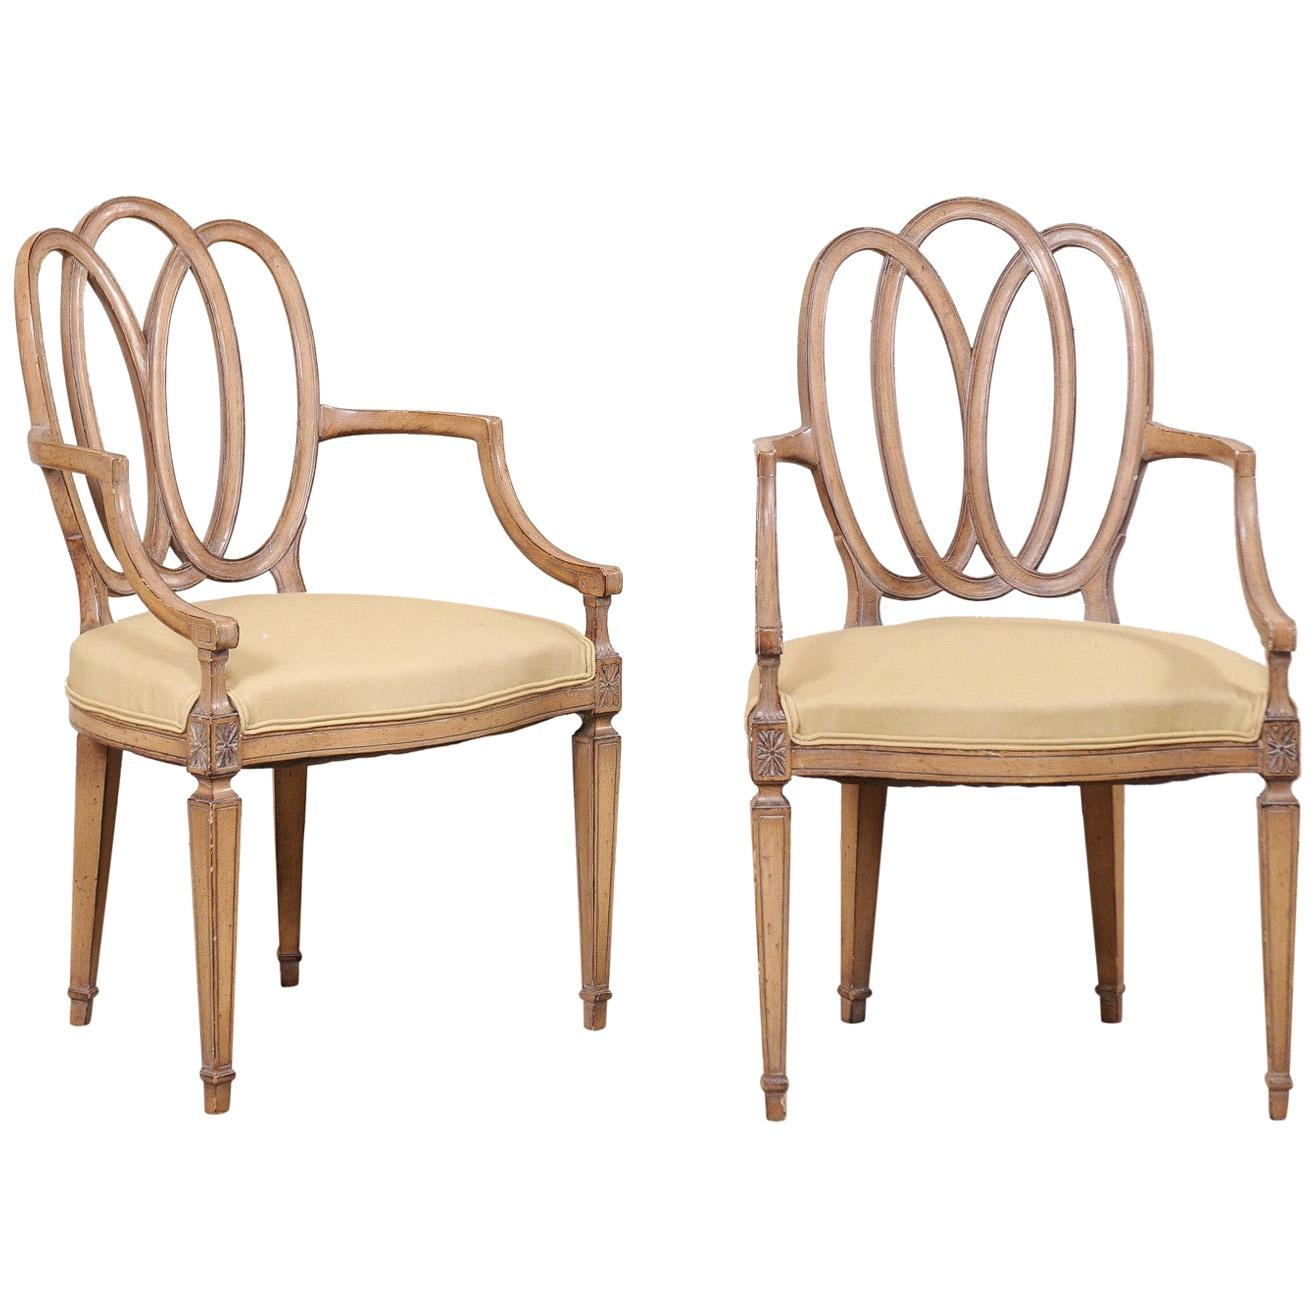 Italian Pair of Carved-Wood Armchairs with Upholstered Seats, Mid-20th Century